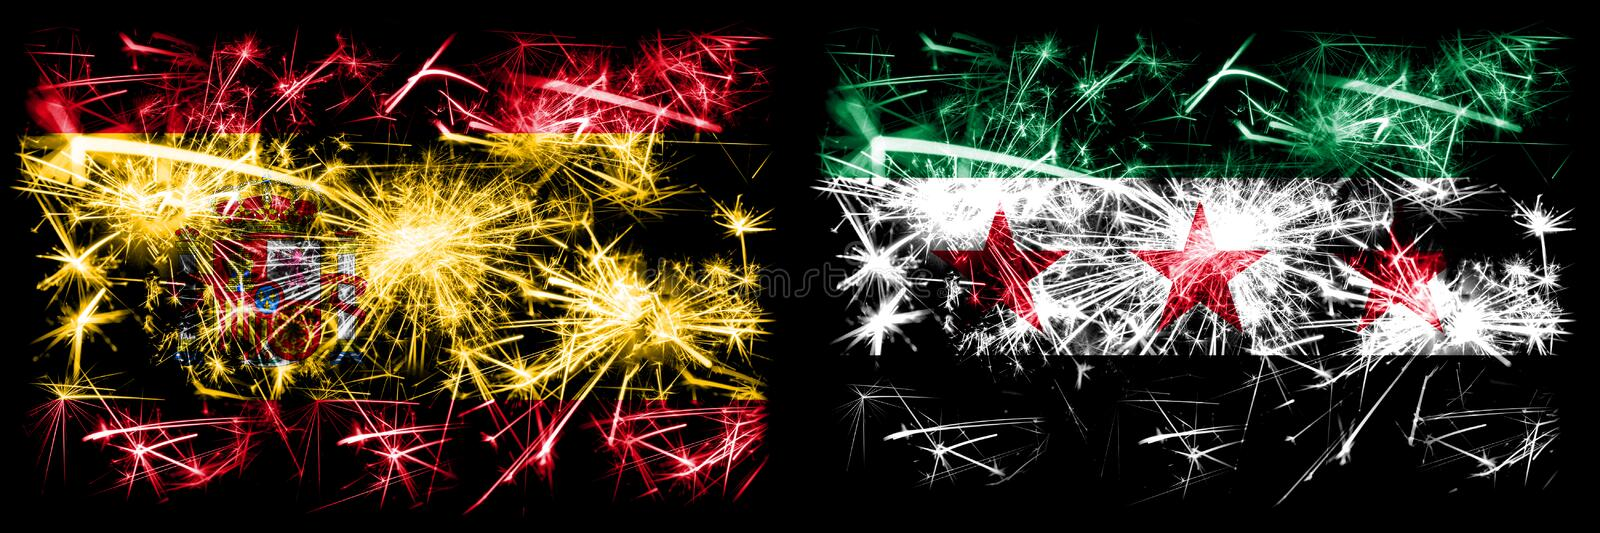 Spanish vs Syria, Syrian Arab Republic, three stars, observed New Year celebration sparkling fireworks flags concept background. Combination of two abstract royalty free illustration